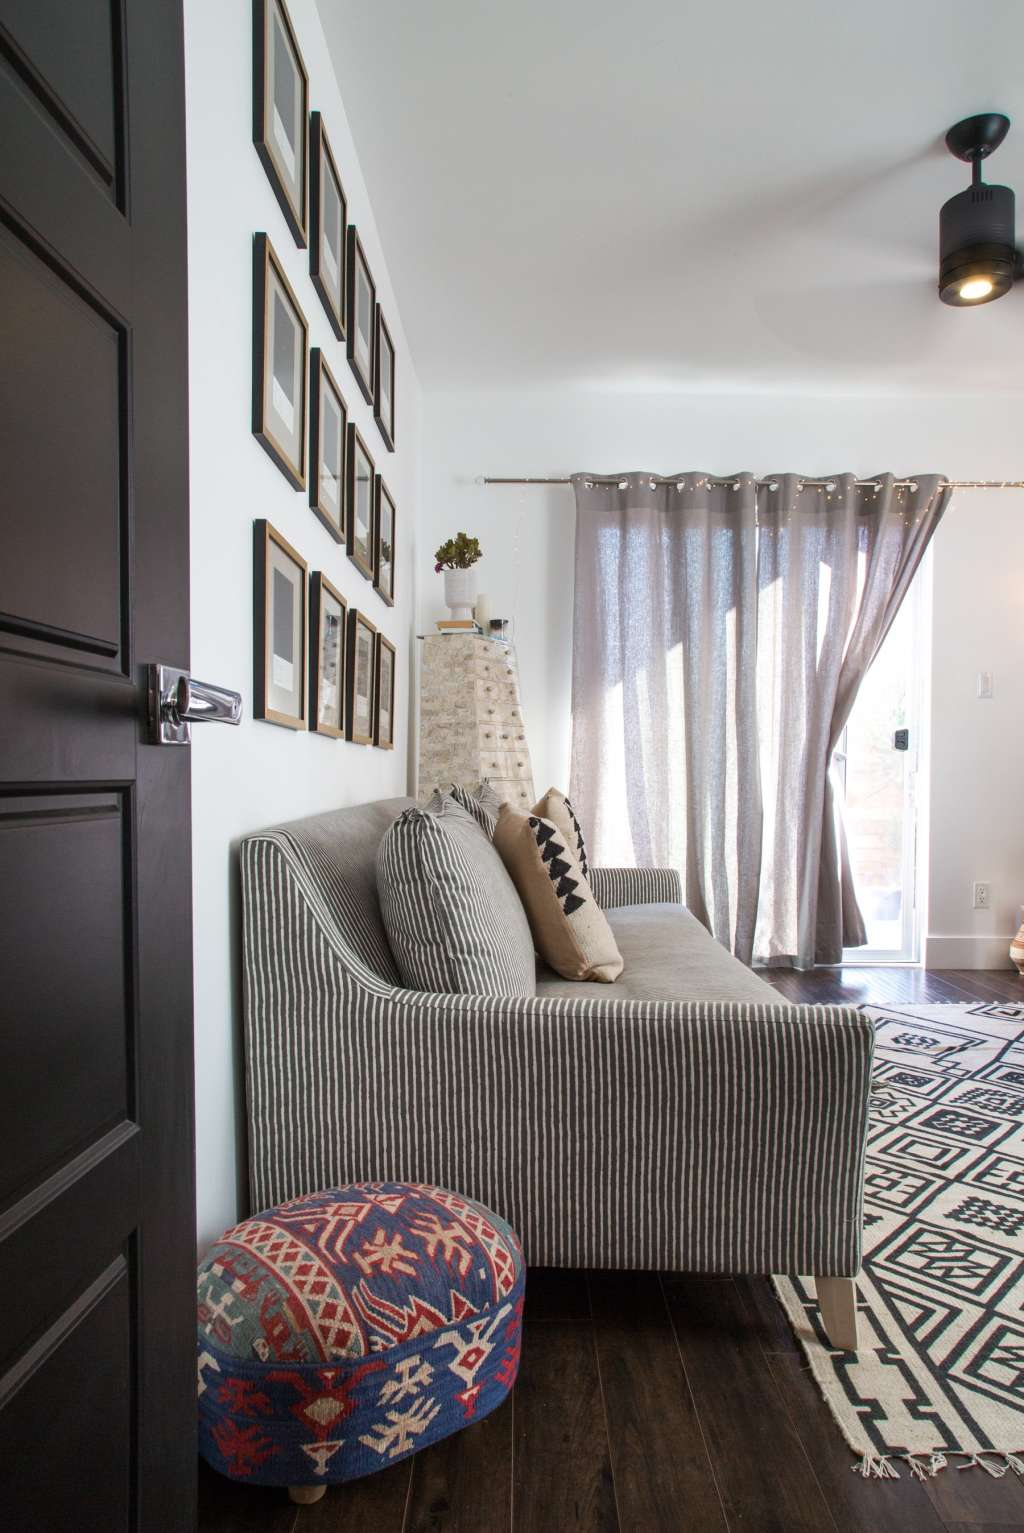 Sofa Sidekicks: 8 Style Add-Ons for Your Living Room Seating